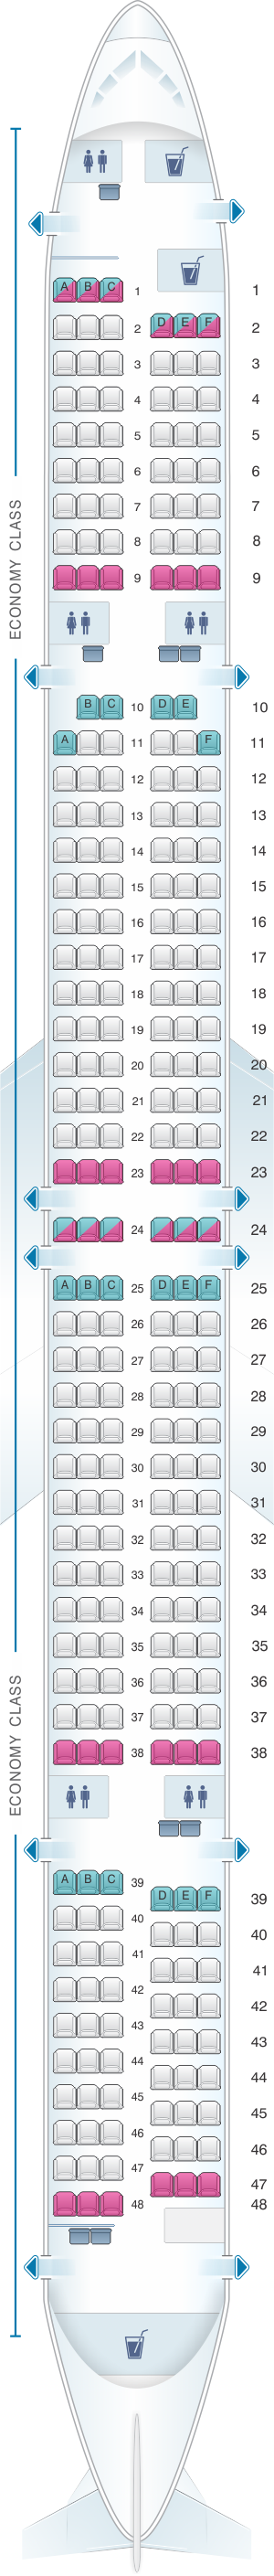 Seat map for Thomas Cook Airlines Boeing B757 300